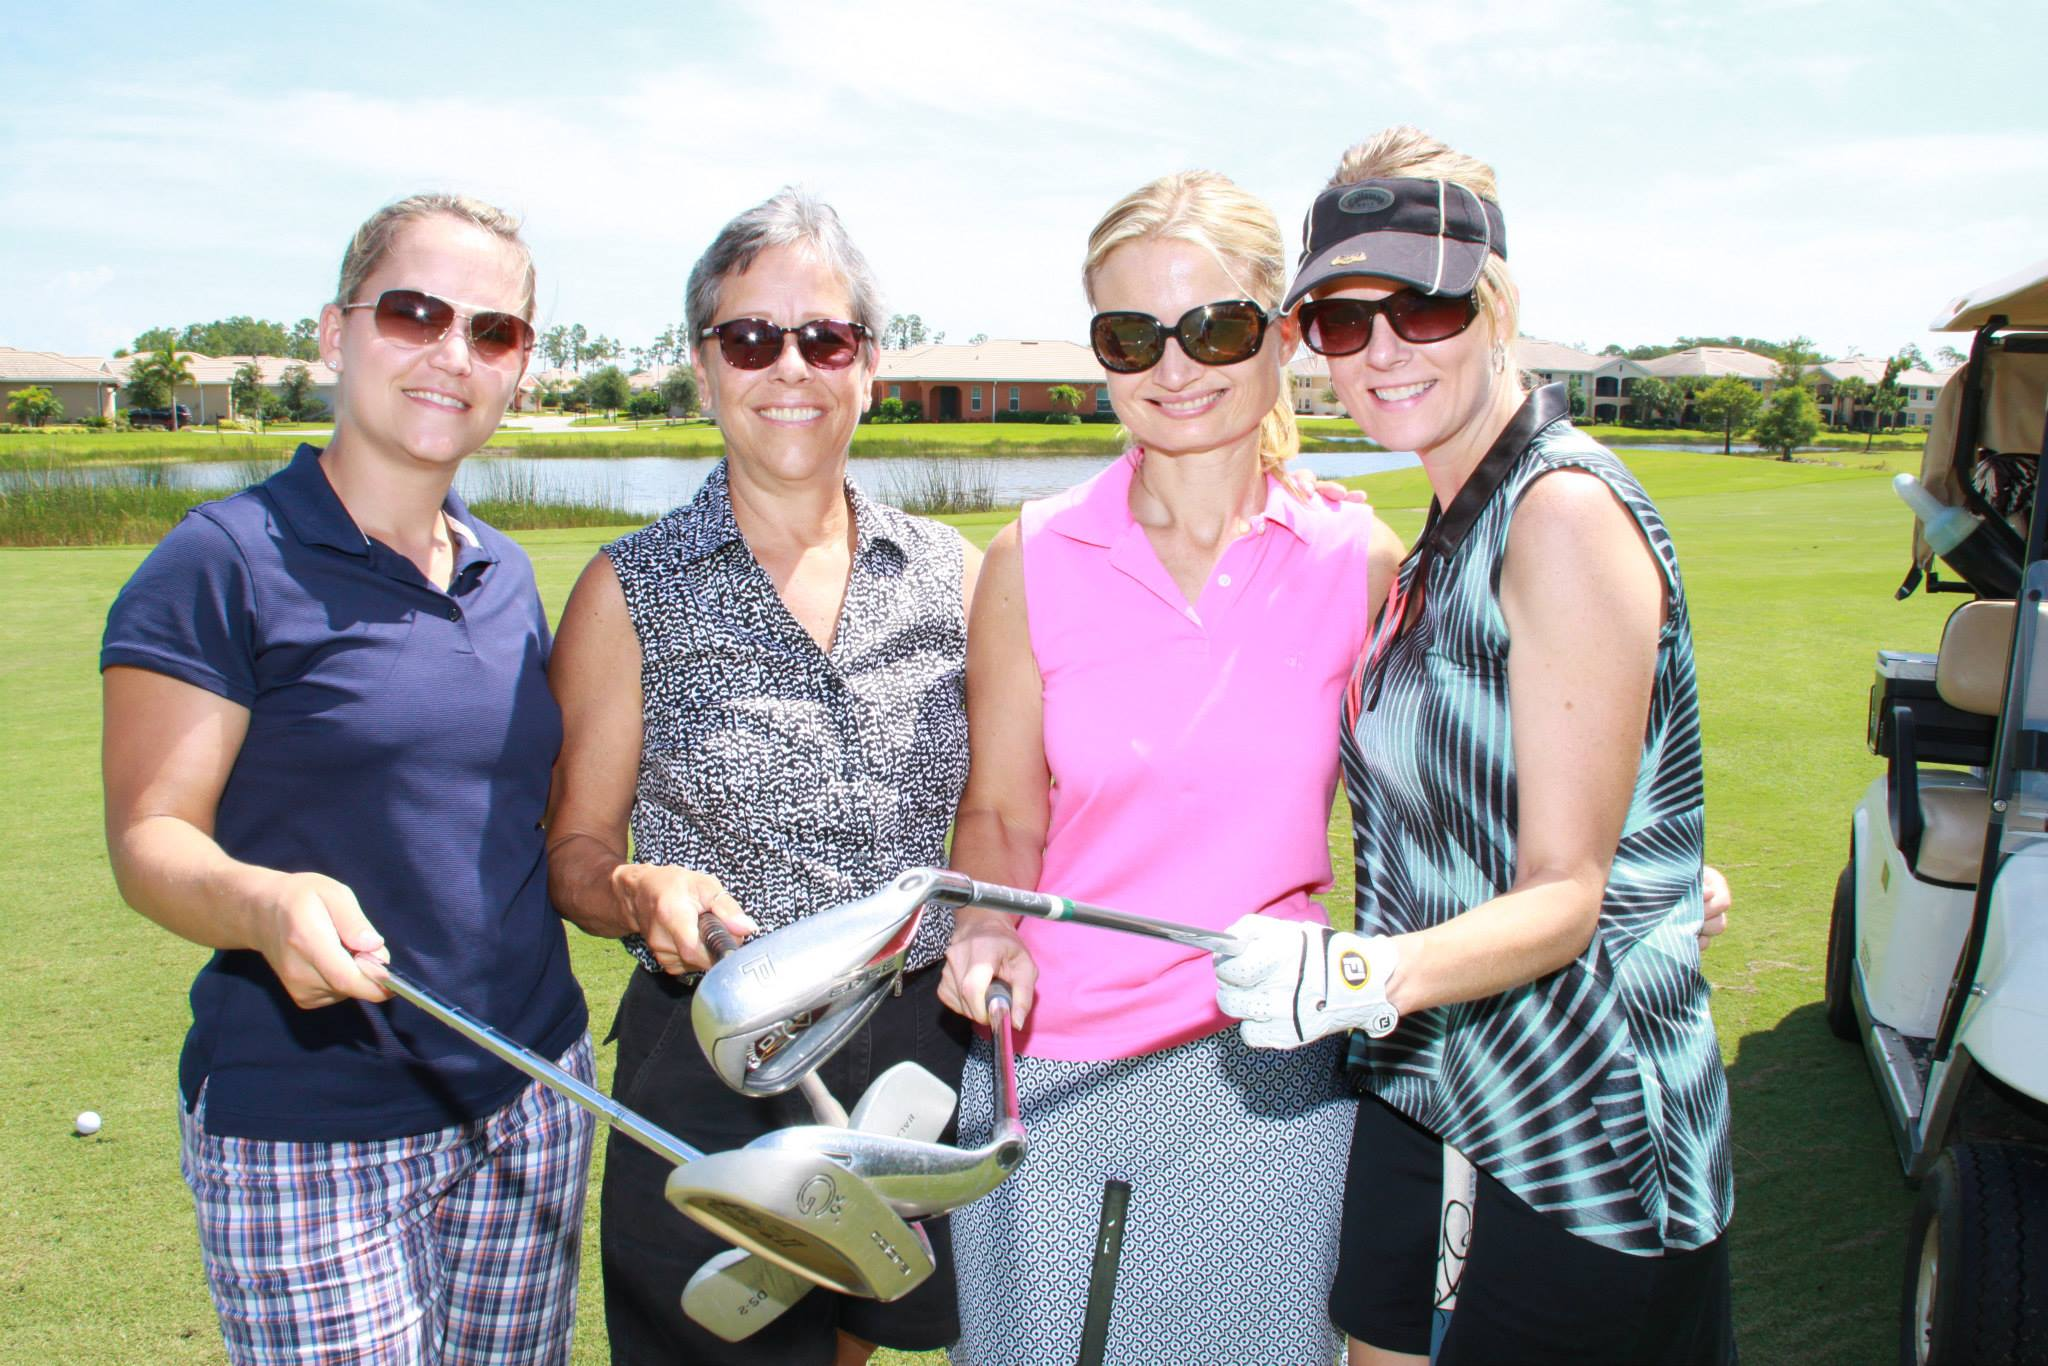 Lee County Bar Association Charity Golf Tournament